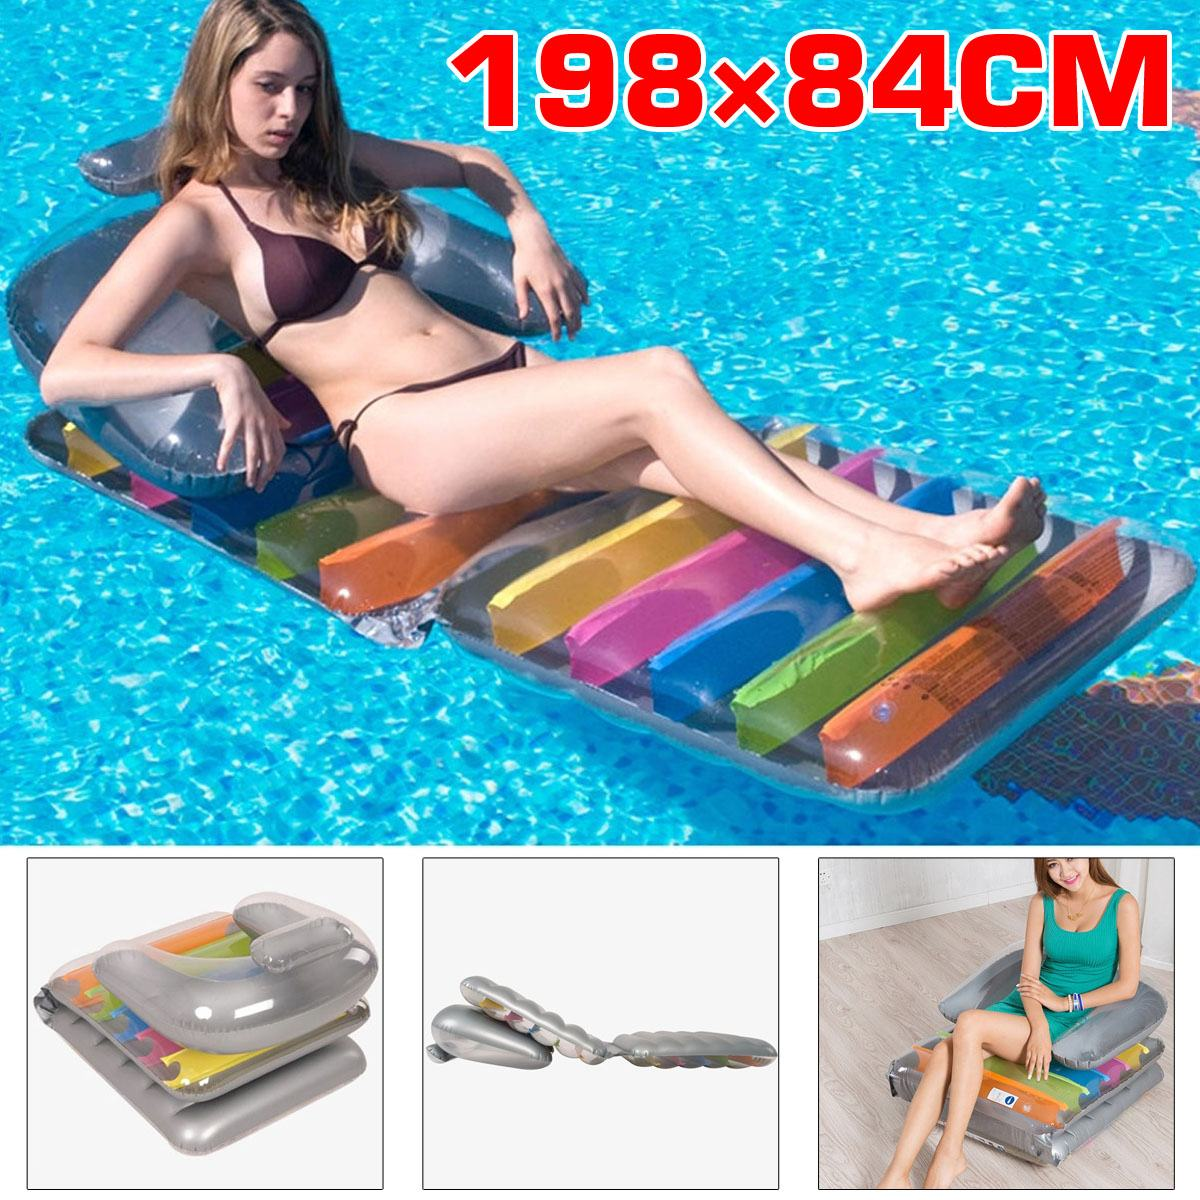 198*84cm Pvc Foldable Water Inflatable Bed Floating Bed Floating Row Water Sofa Recliner Swimming Mattress Party Lounge Bed Catalogues Will Be Sent Upon Request